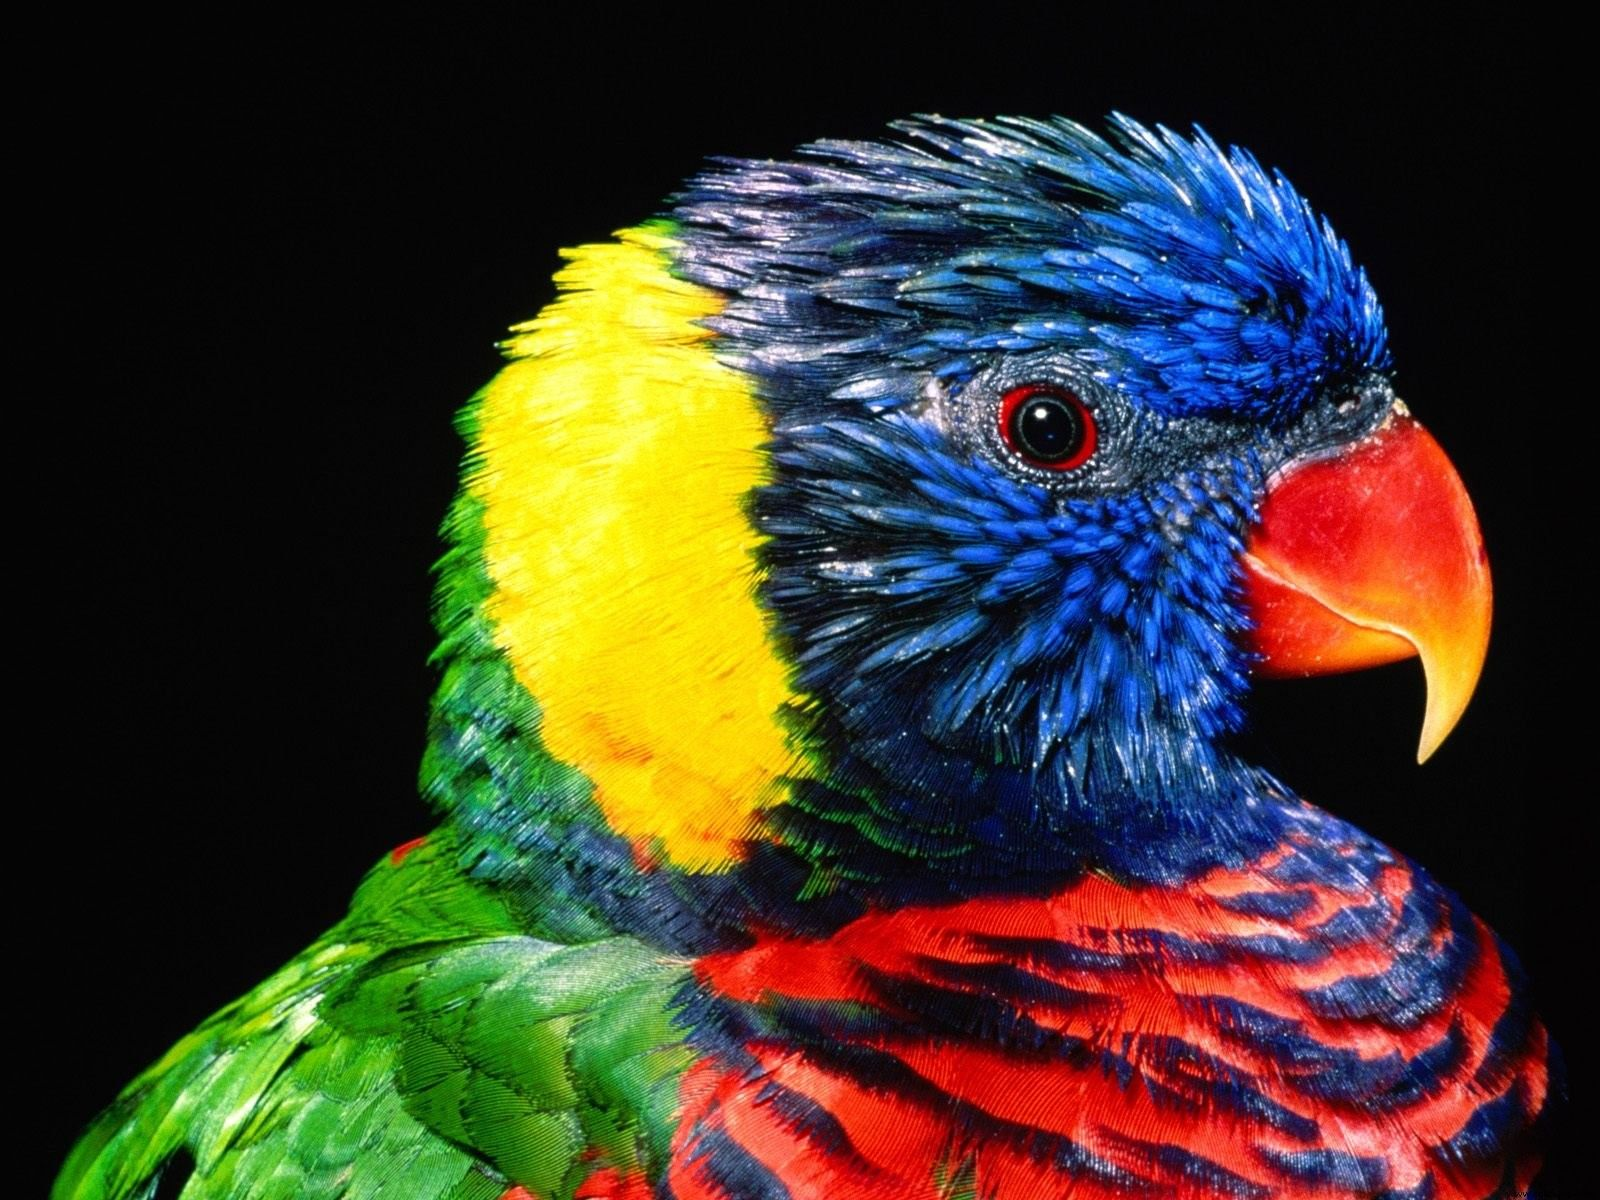 35 Lovely Colorful Parrots Gallery Inspiration Parrot Wallpaper Colorful Parrots Beautiful Birds